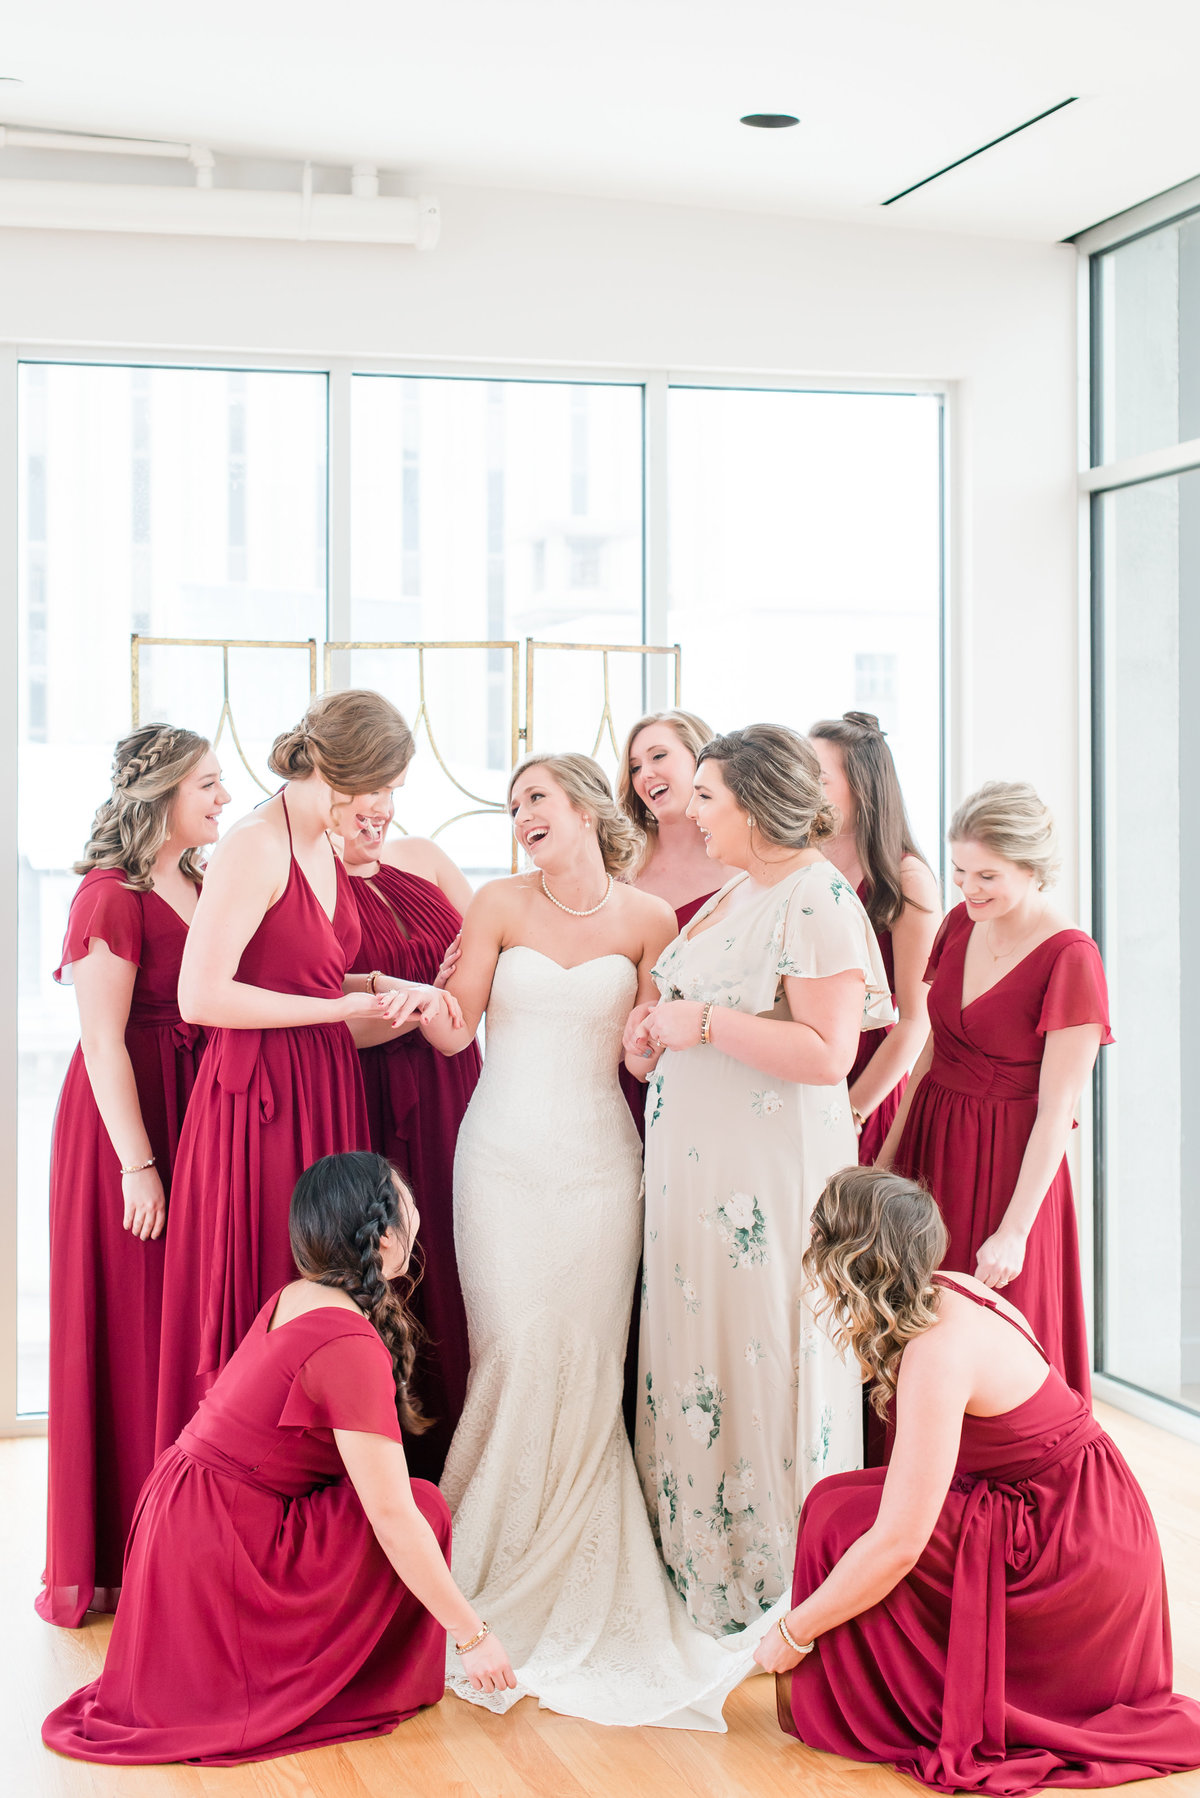 a bride wearing a strapless wedding dress surrounded by her bridesmaids wearing red dresses looking at each other and laughing at the Glassbox at 230 in Raleigh NC